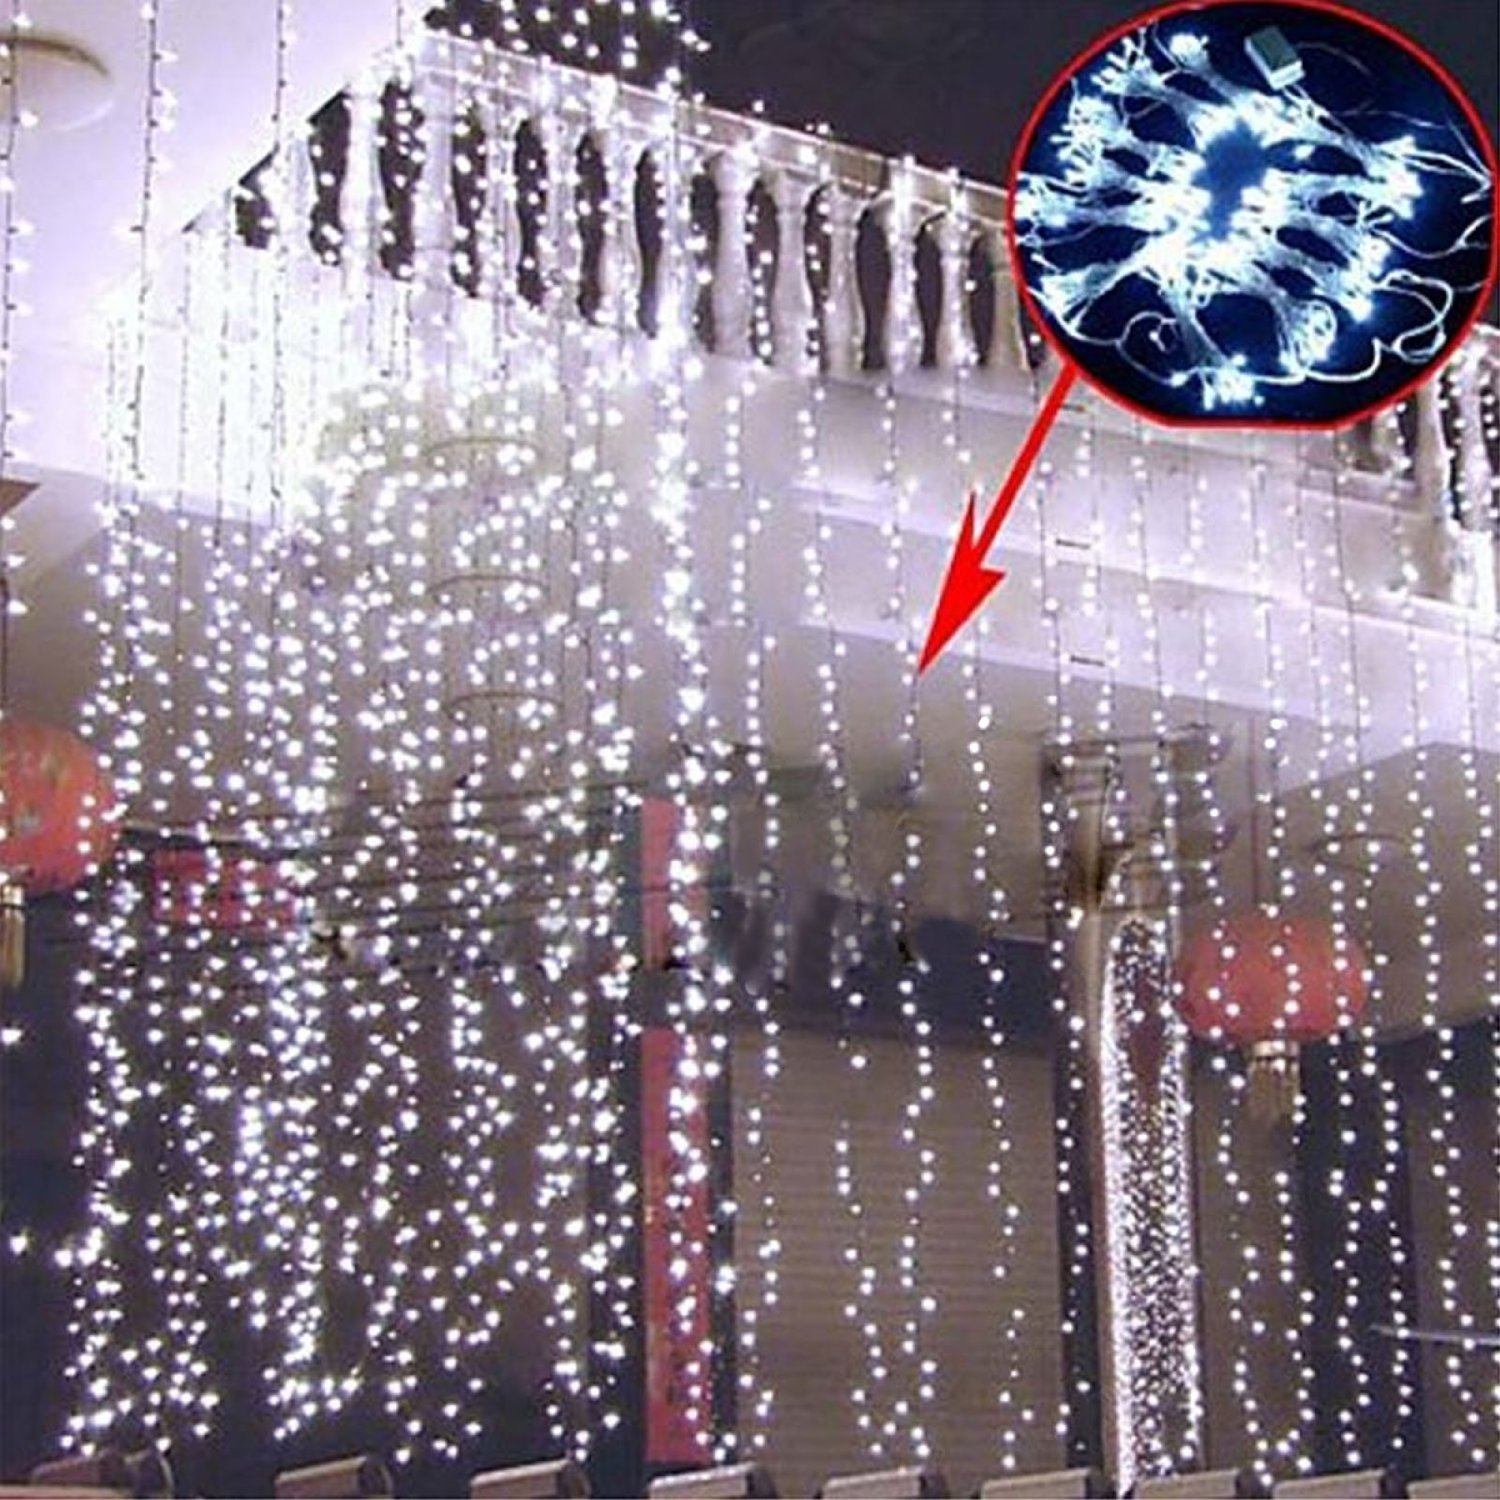 Curtain Lights, Image 224 LED 117.6 in 79.2 in LED Lights String Fairy String Lights for Garden/Wedding/Party/Window/Home Decorative - Pure White by Unknown (Image #9)